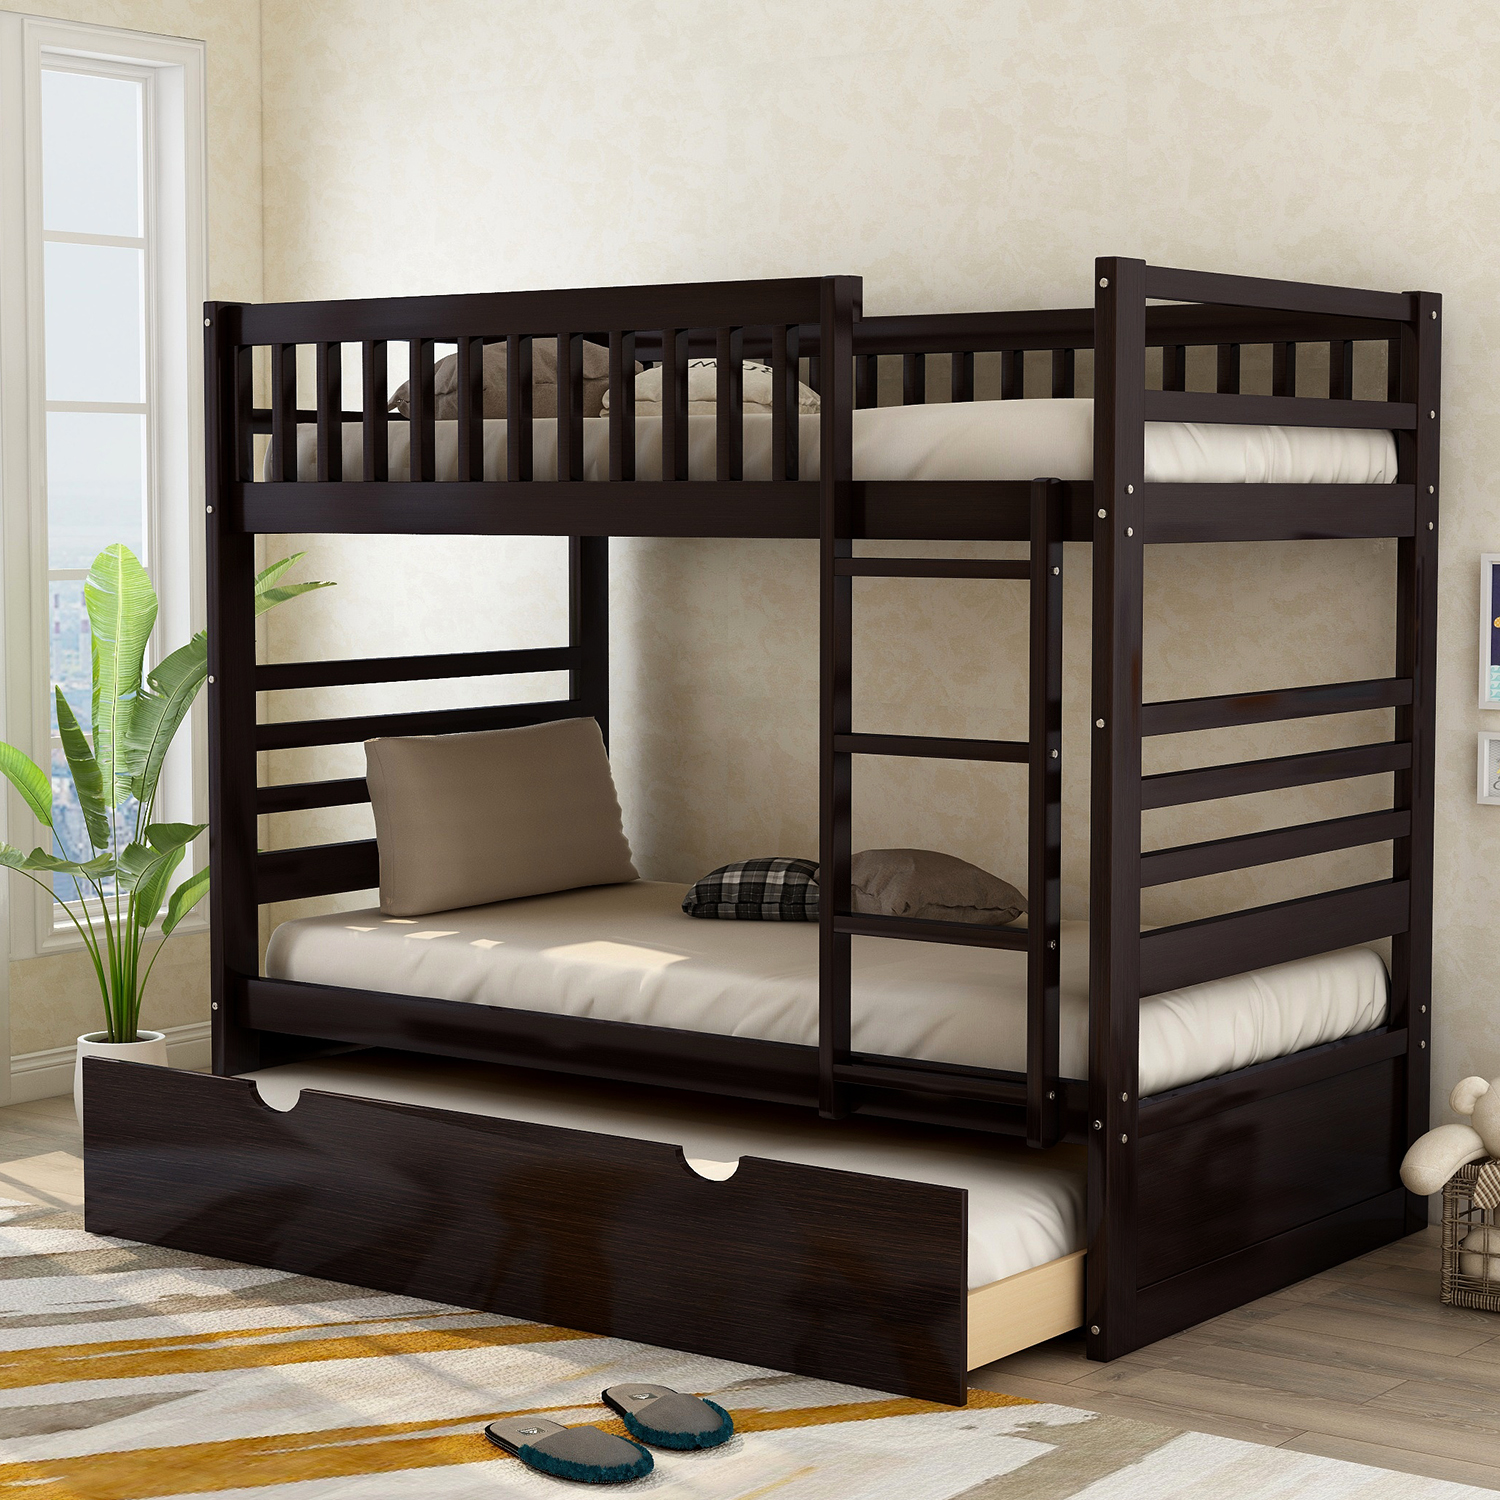 Merax Wood Bunk Bed Twin Over Twin With Trundle Espresso Walmart Com Bunk Bed With Trundle Wood Bunk Beds Bunk Beds Twin over twin with trundle